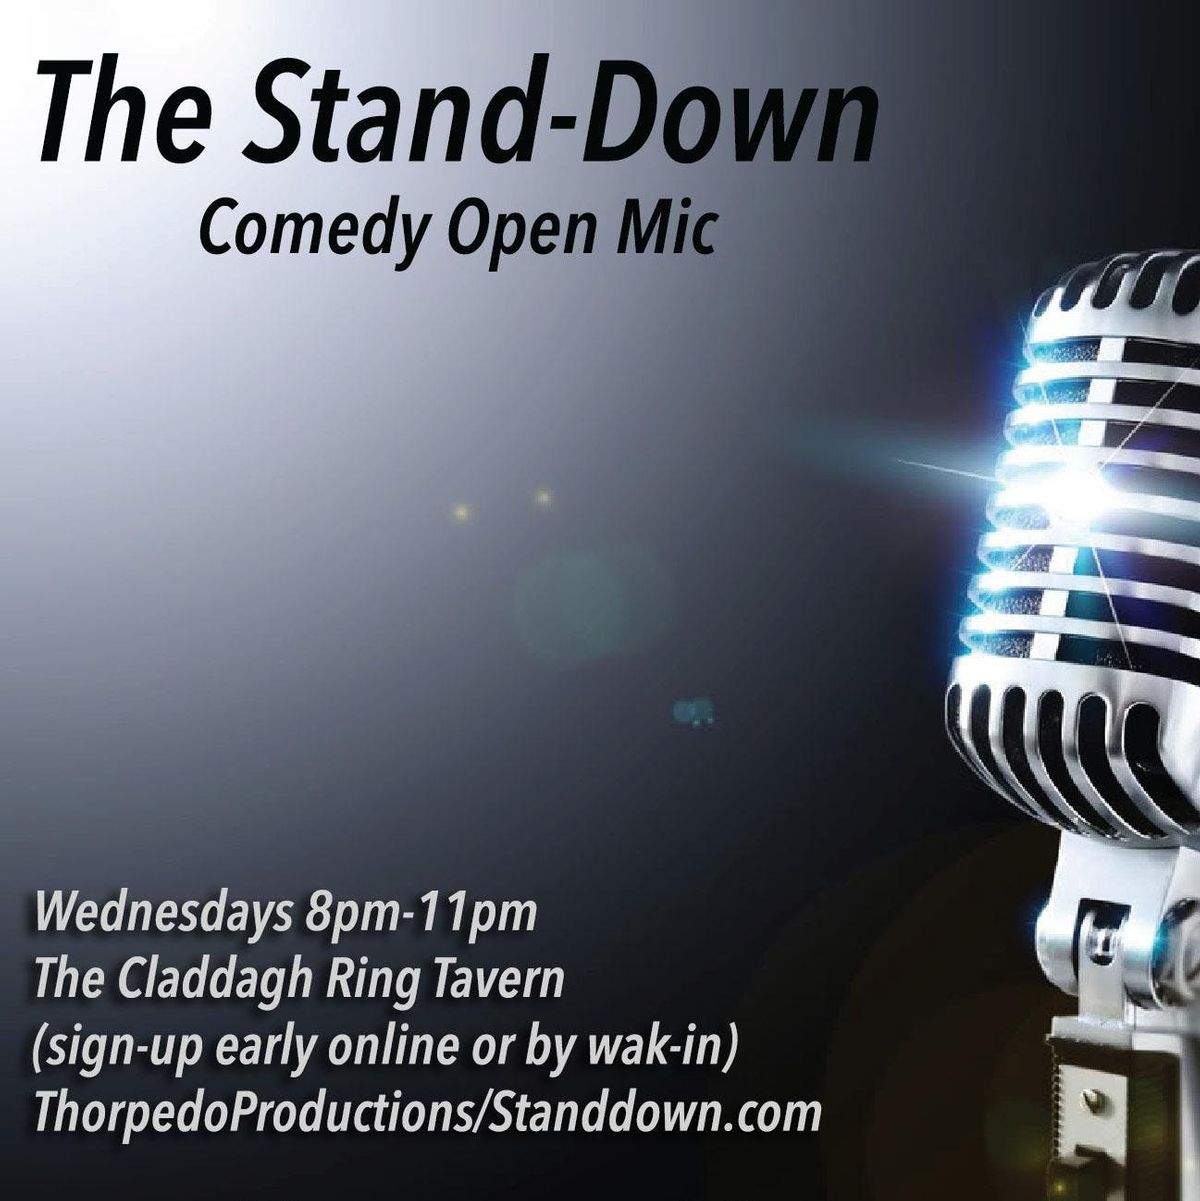 Stand-down Open Mic at The Claddagh Ring